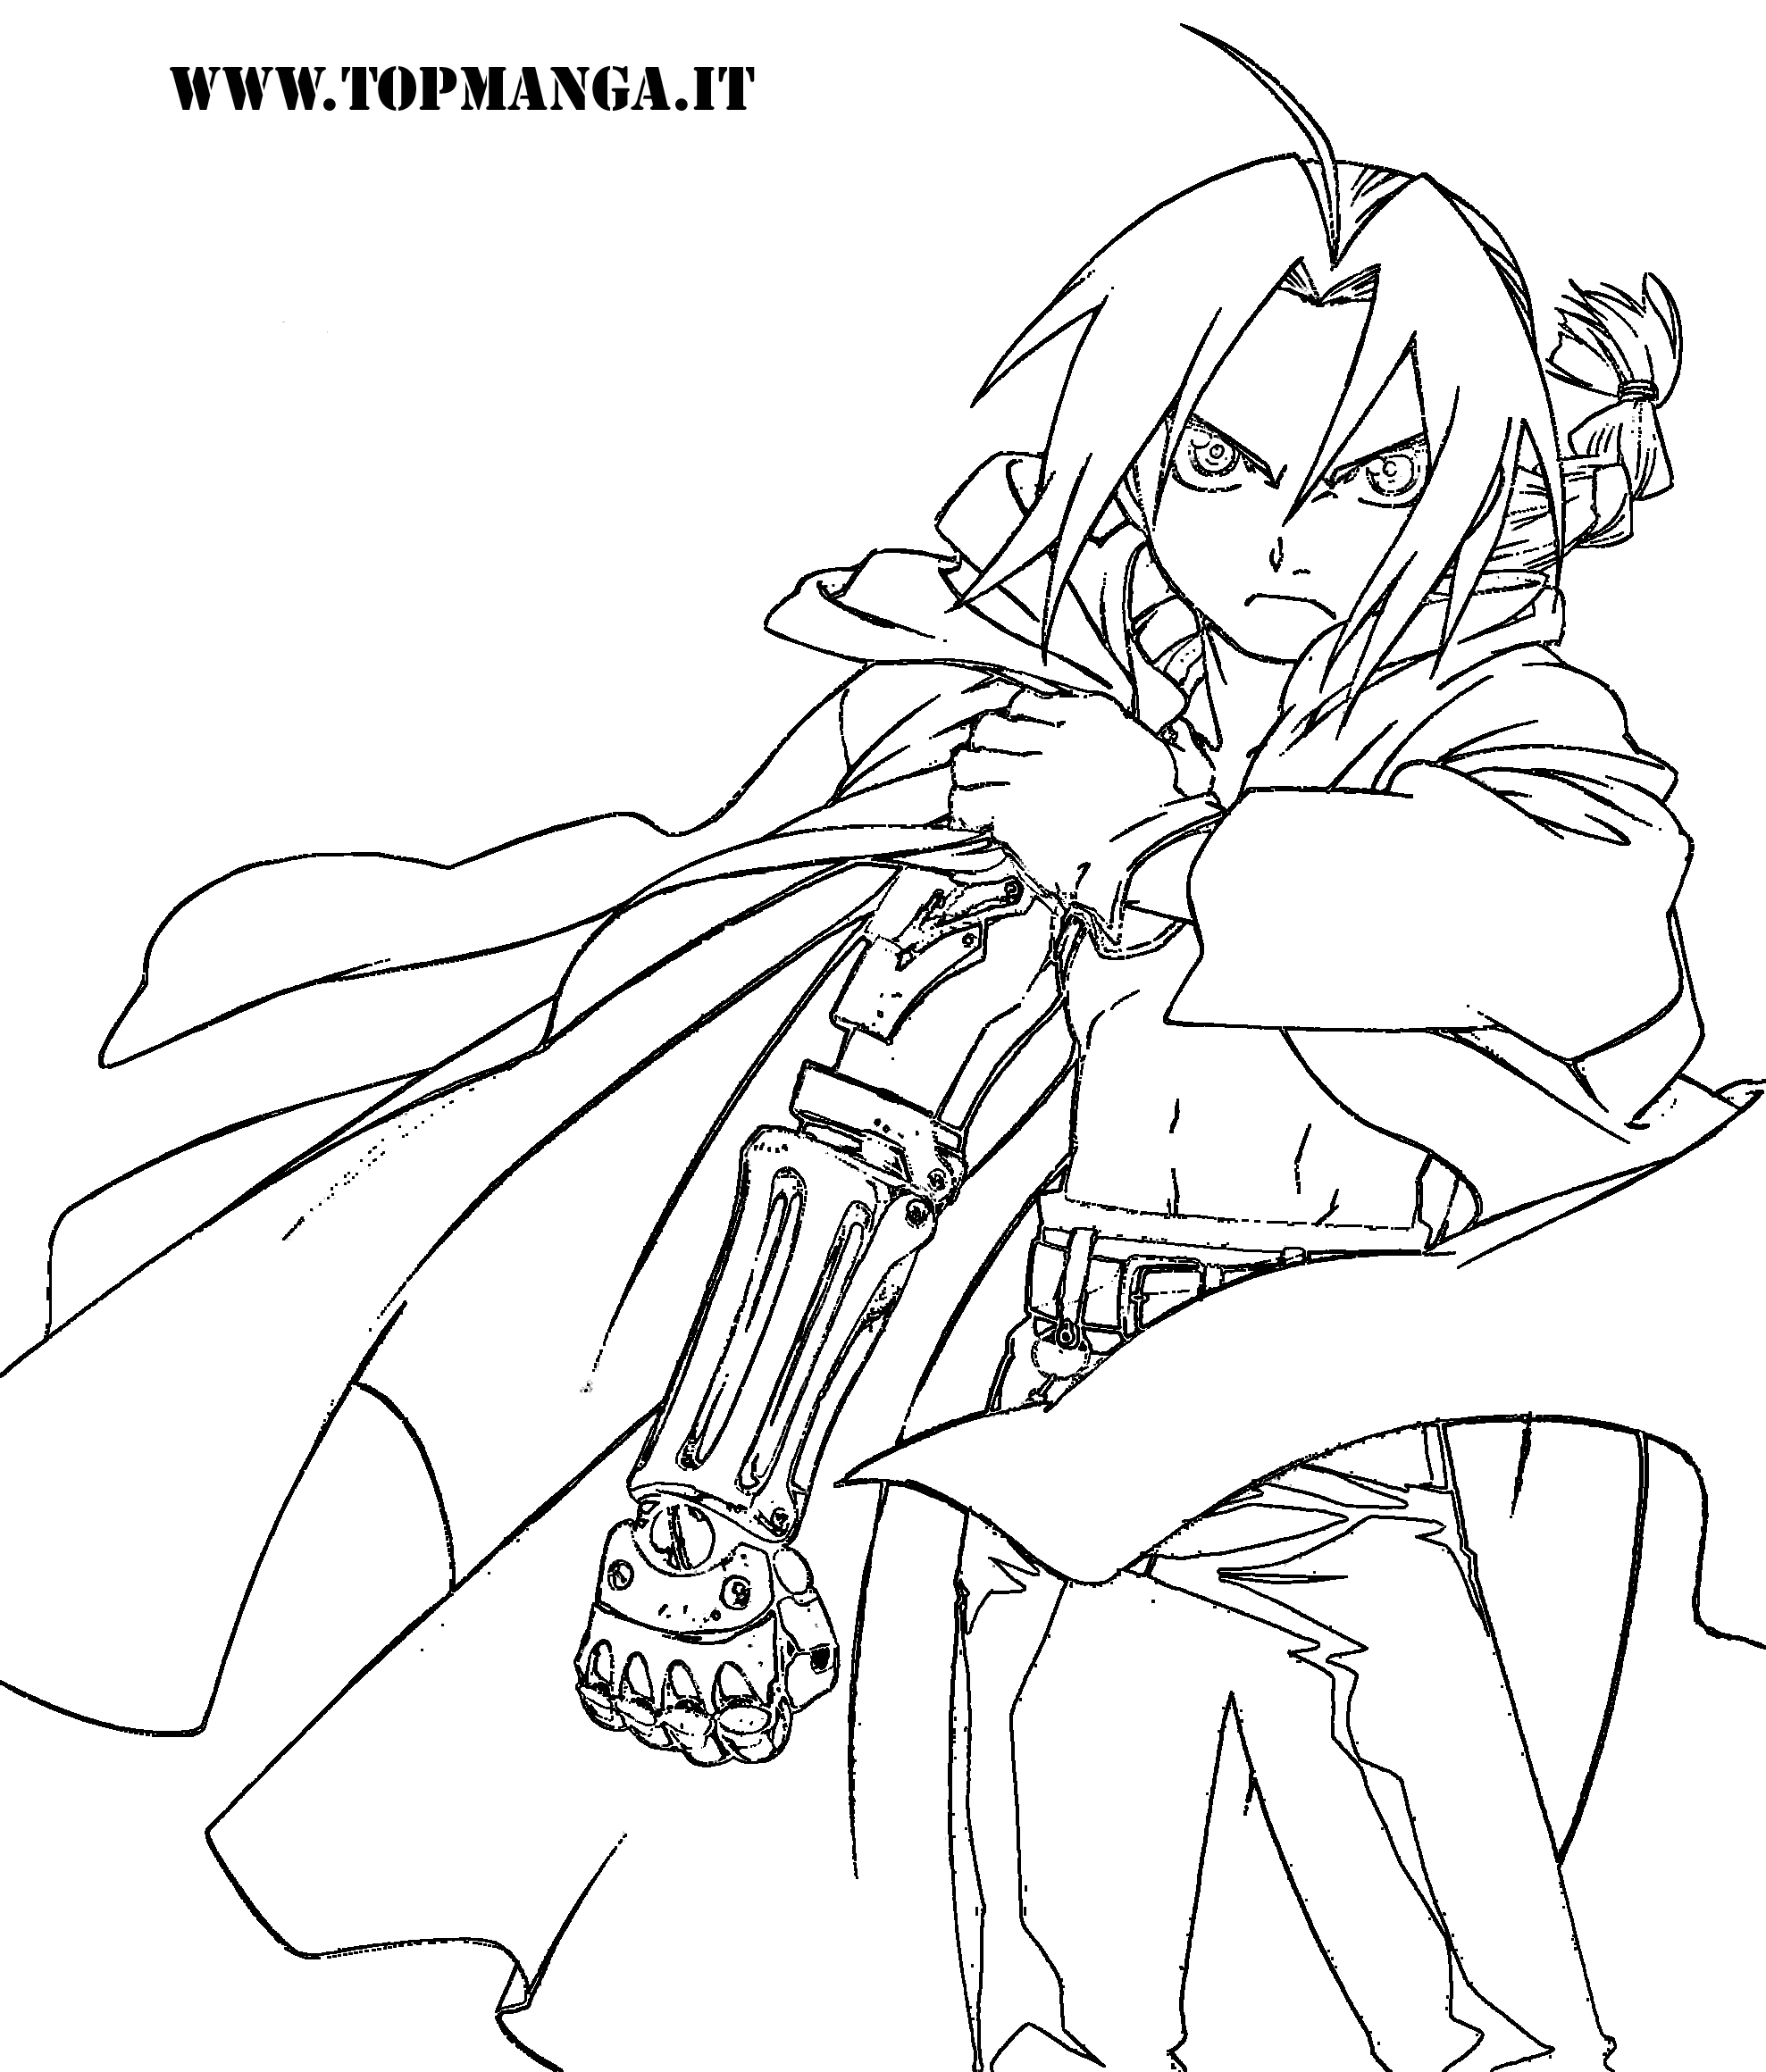 free fullmetal alchemist coloring pages - photo#7